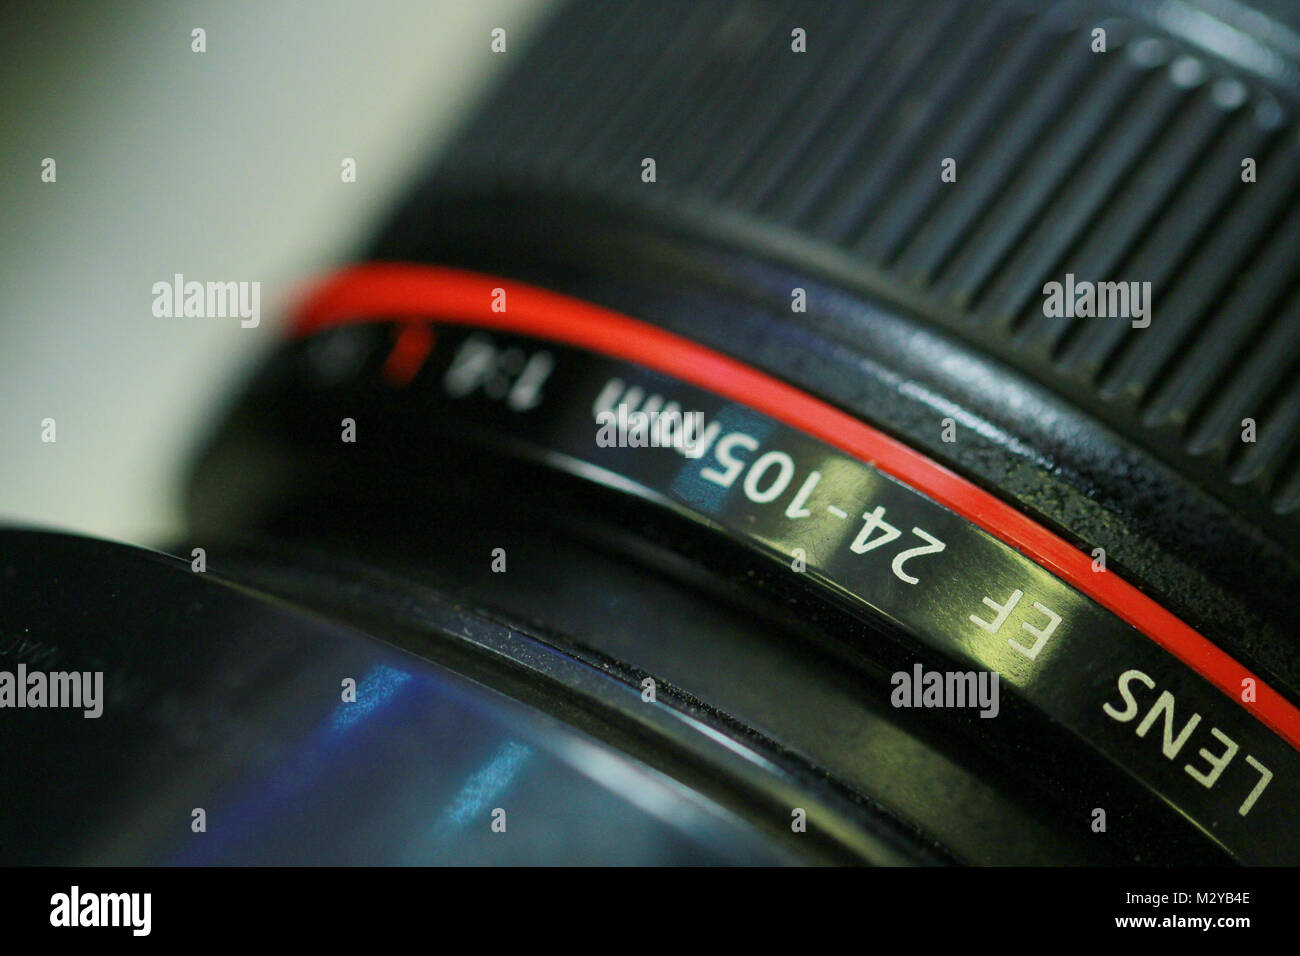 Dslr Camera Lens On A Dark Background Stock Photo 173934446 Alamy